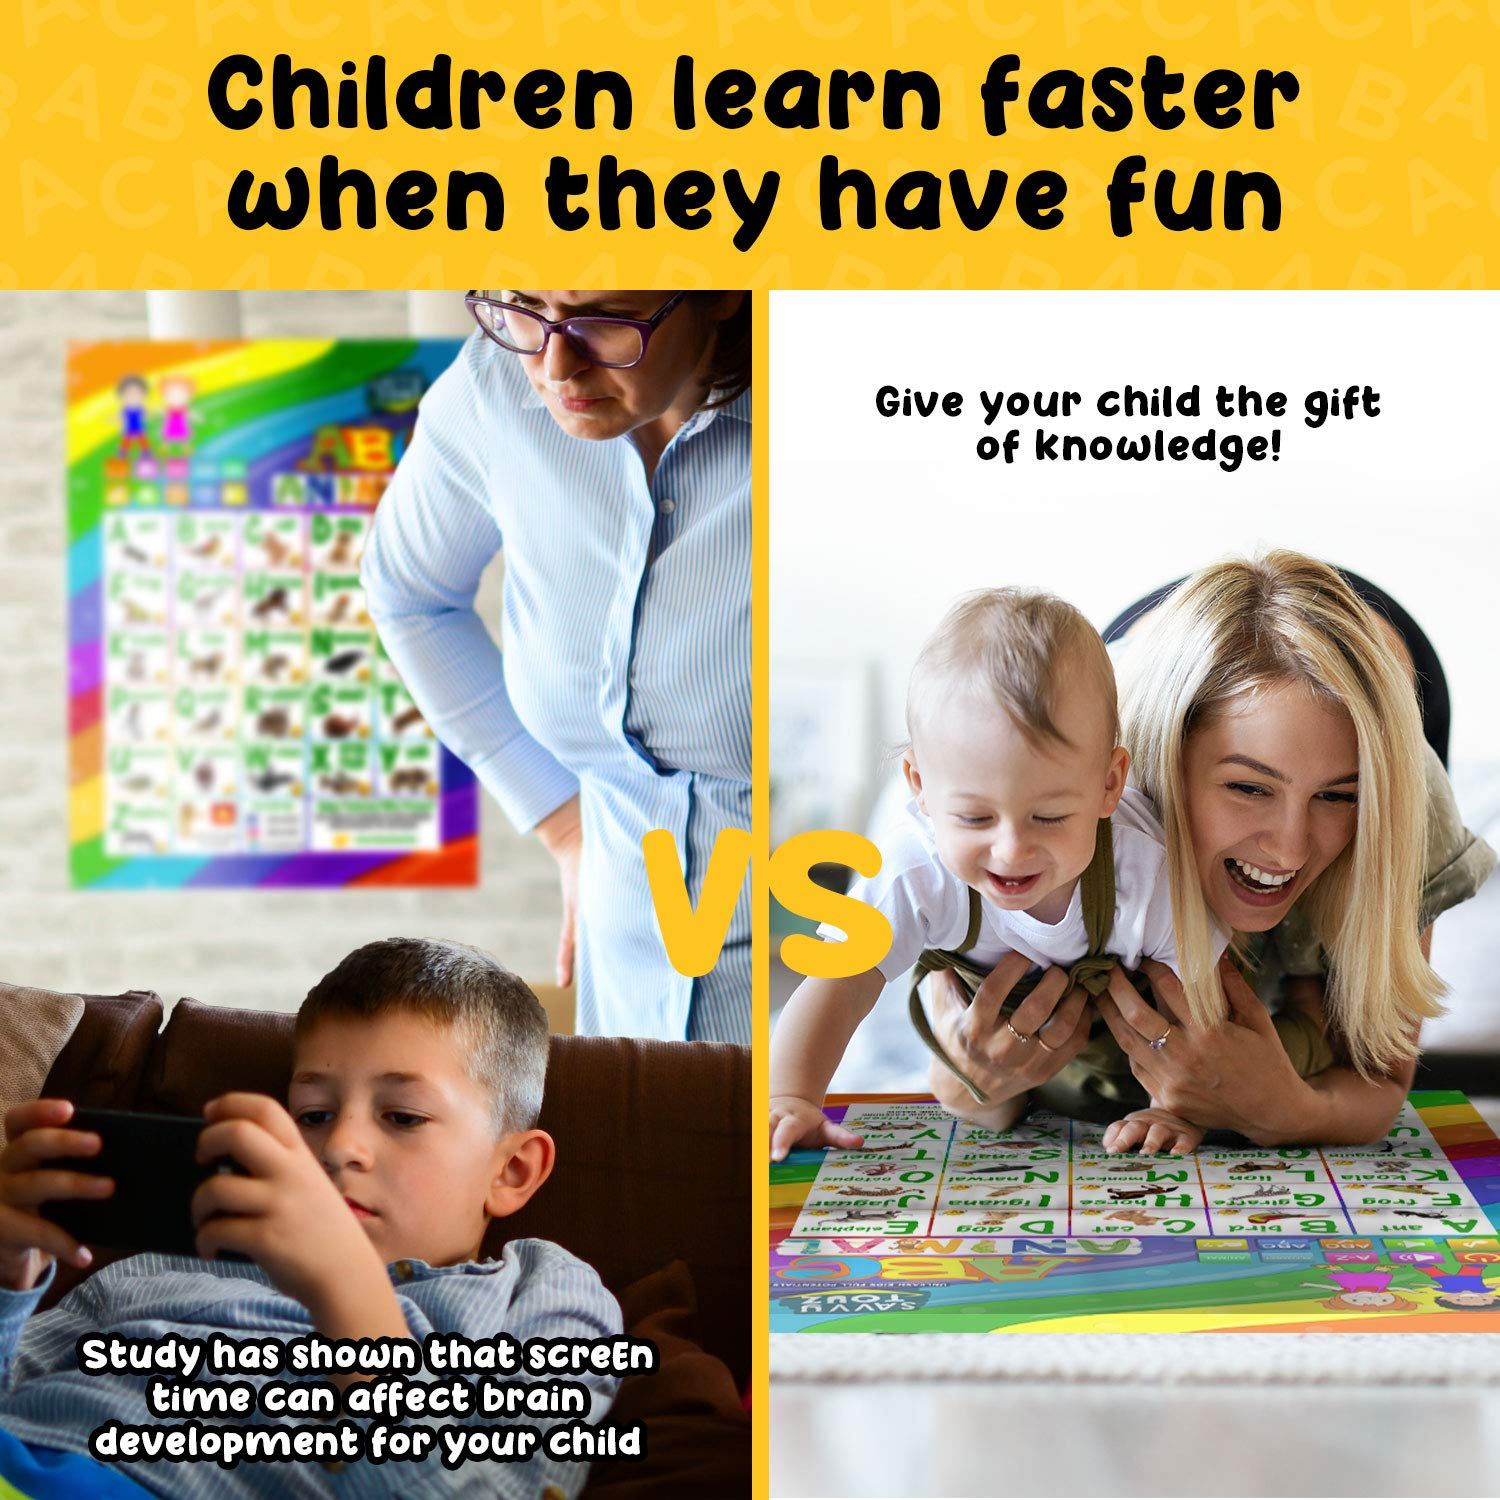 SavvyToyZ Educational Toys for 2-5 Year Olds - Help Your Toddler's Development and Education with Preschool Learning Toys - Fun Talking Interactive Poster for Entertainment and Learning Alphabet by SavvyToyZ (Image #8)